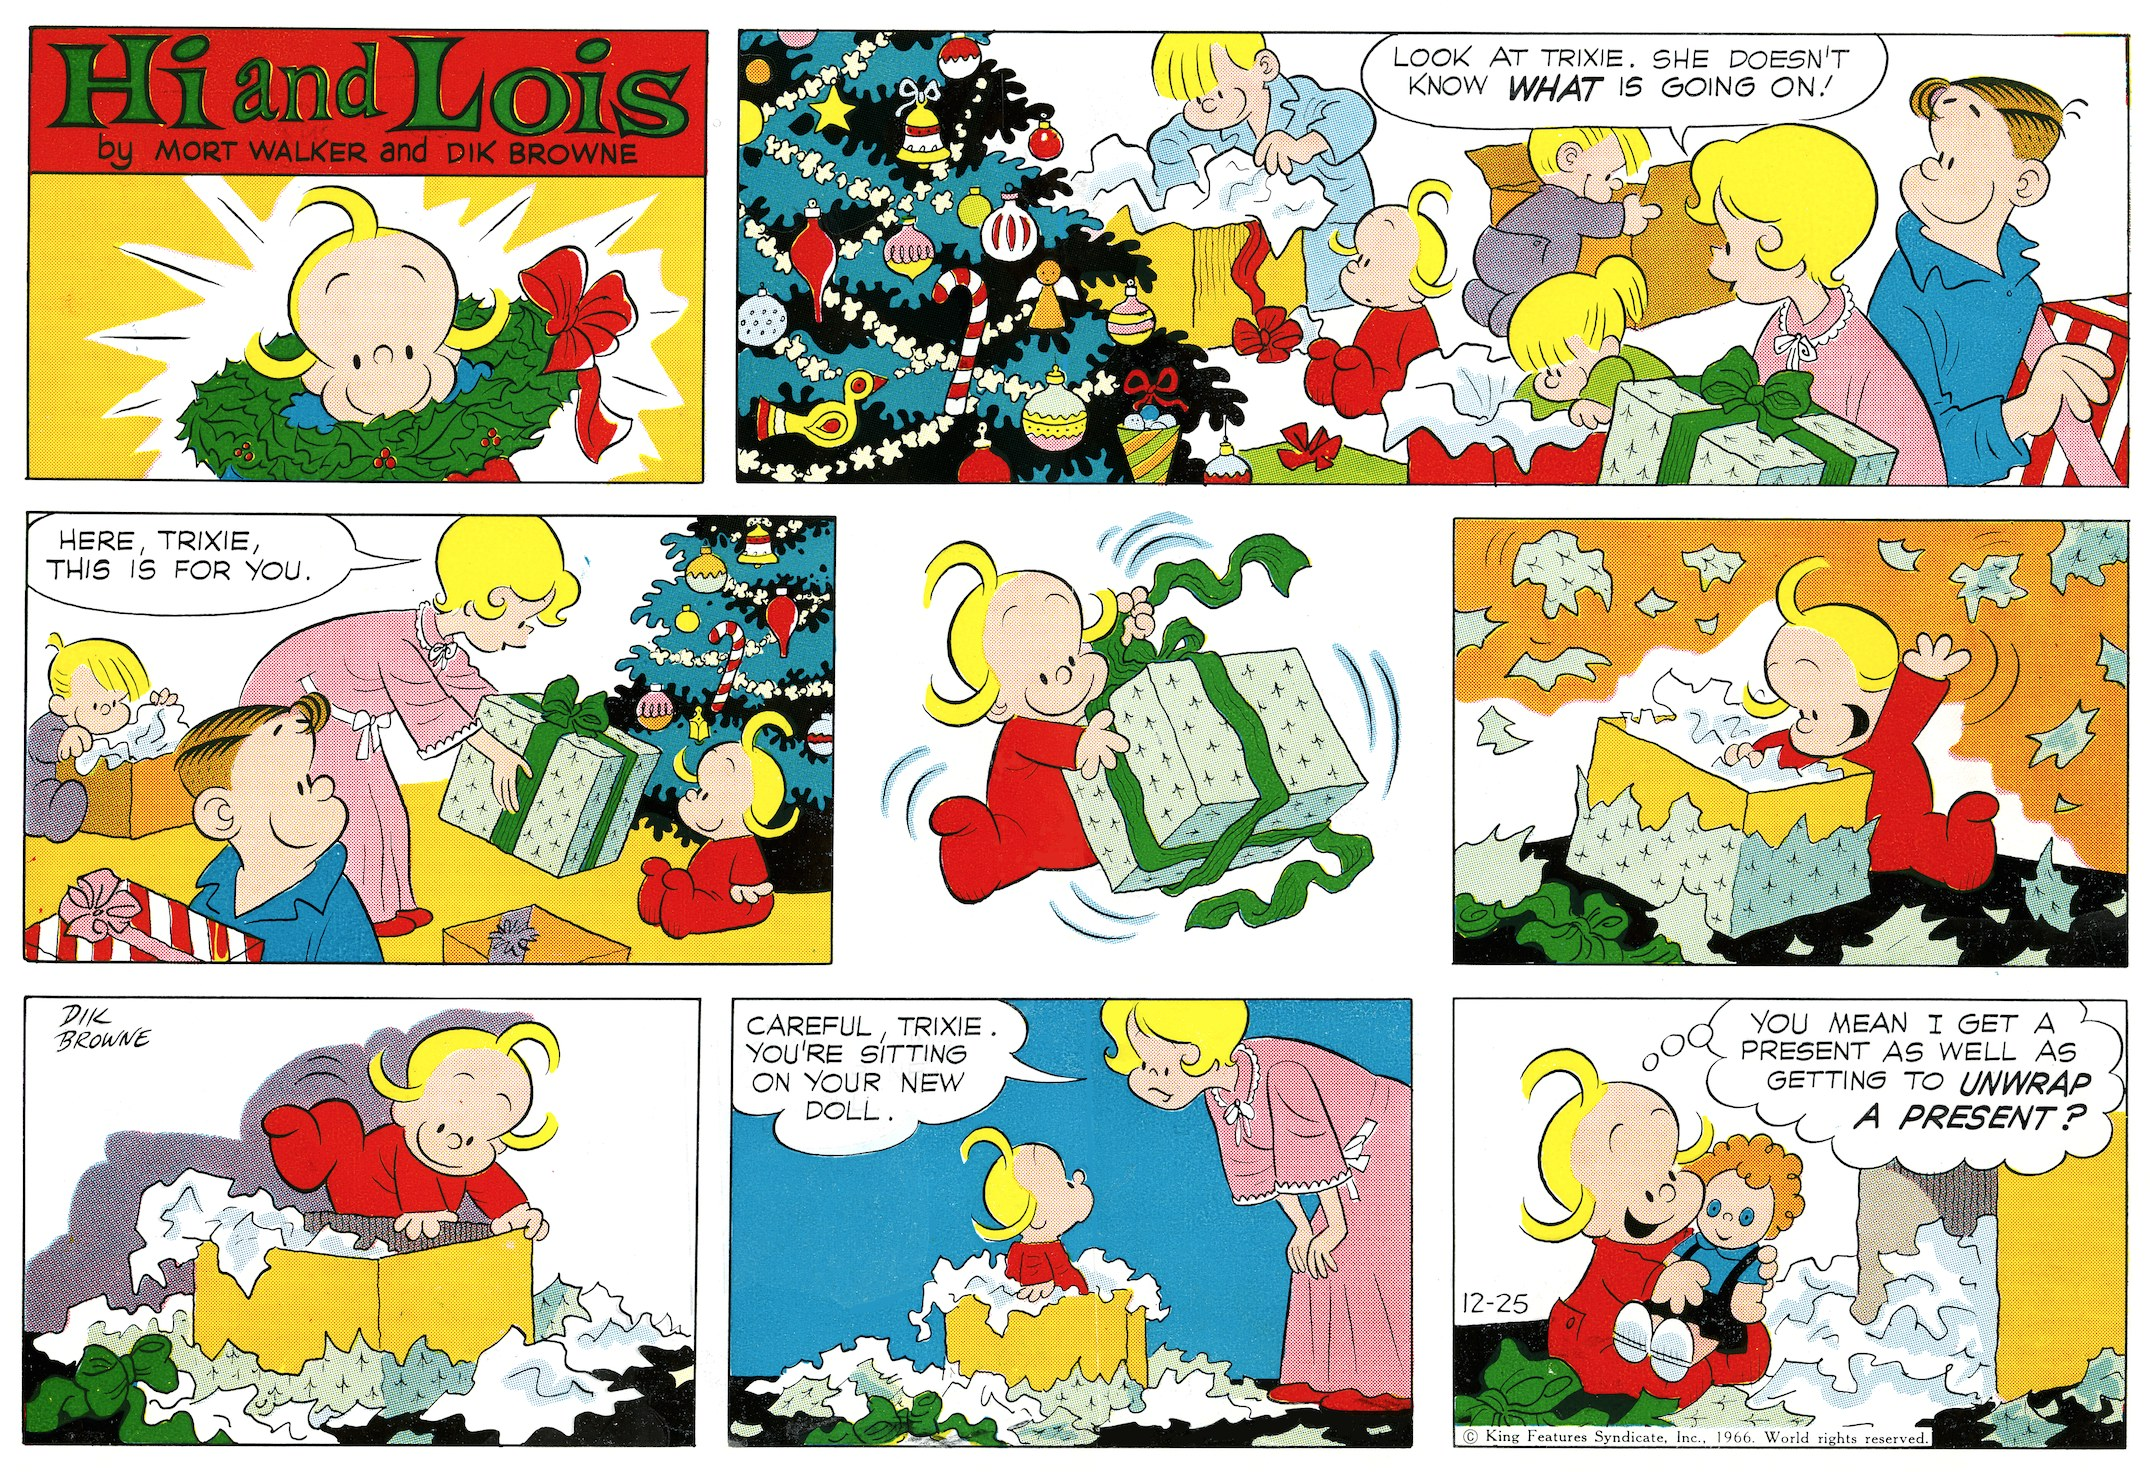 Hi and Lois Sunday page, December 25, 1966.